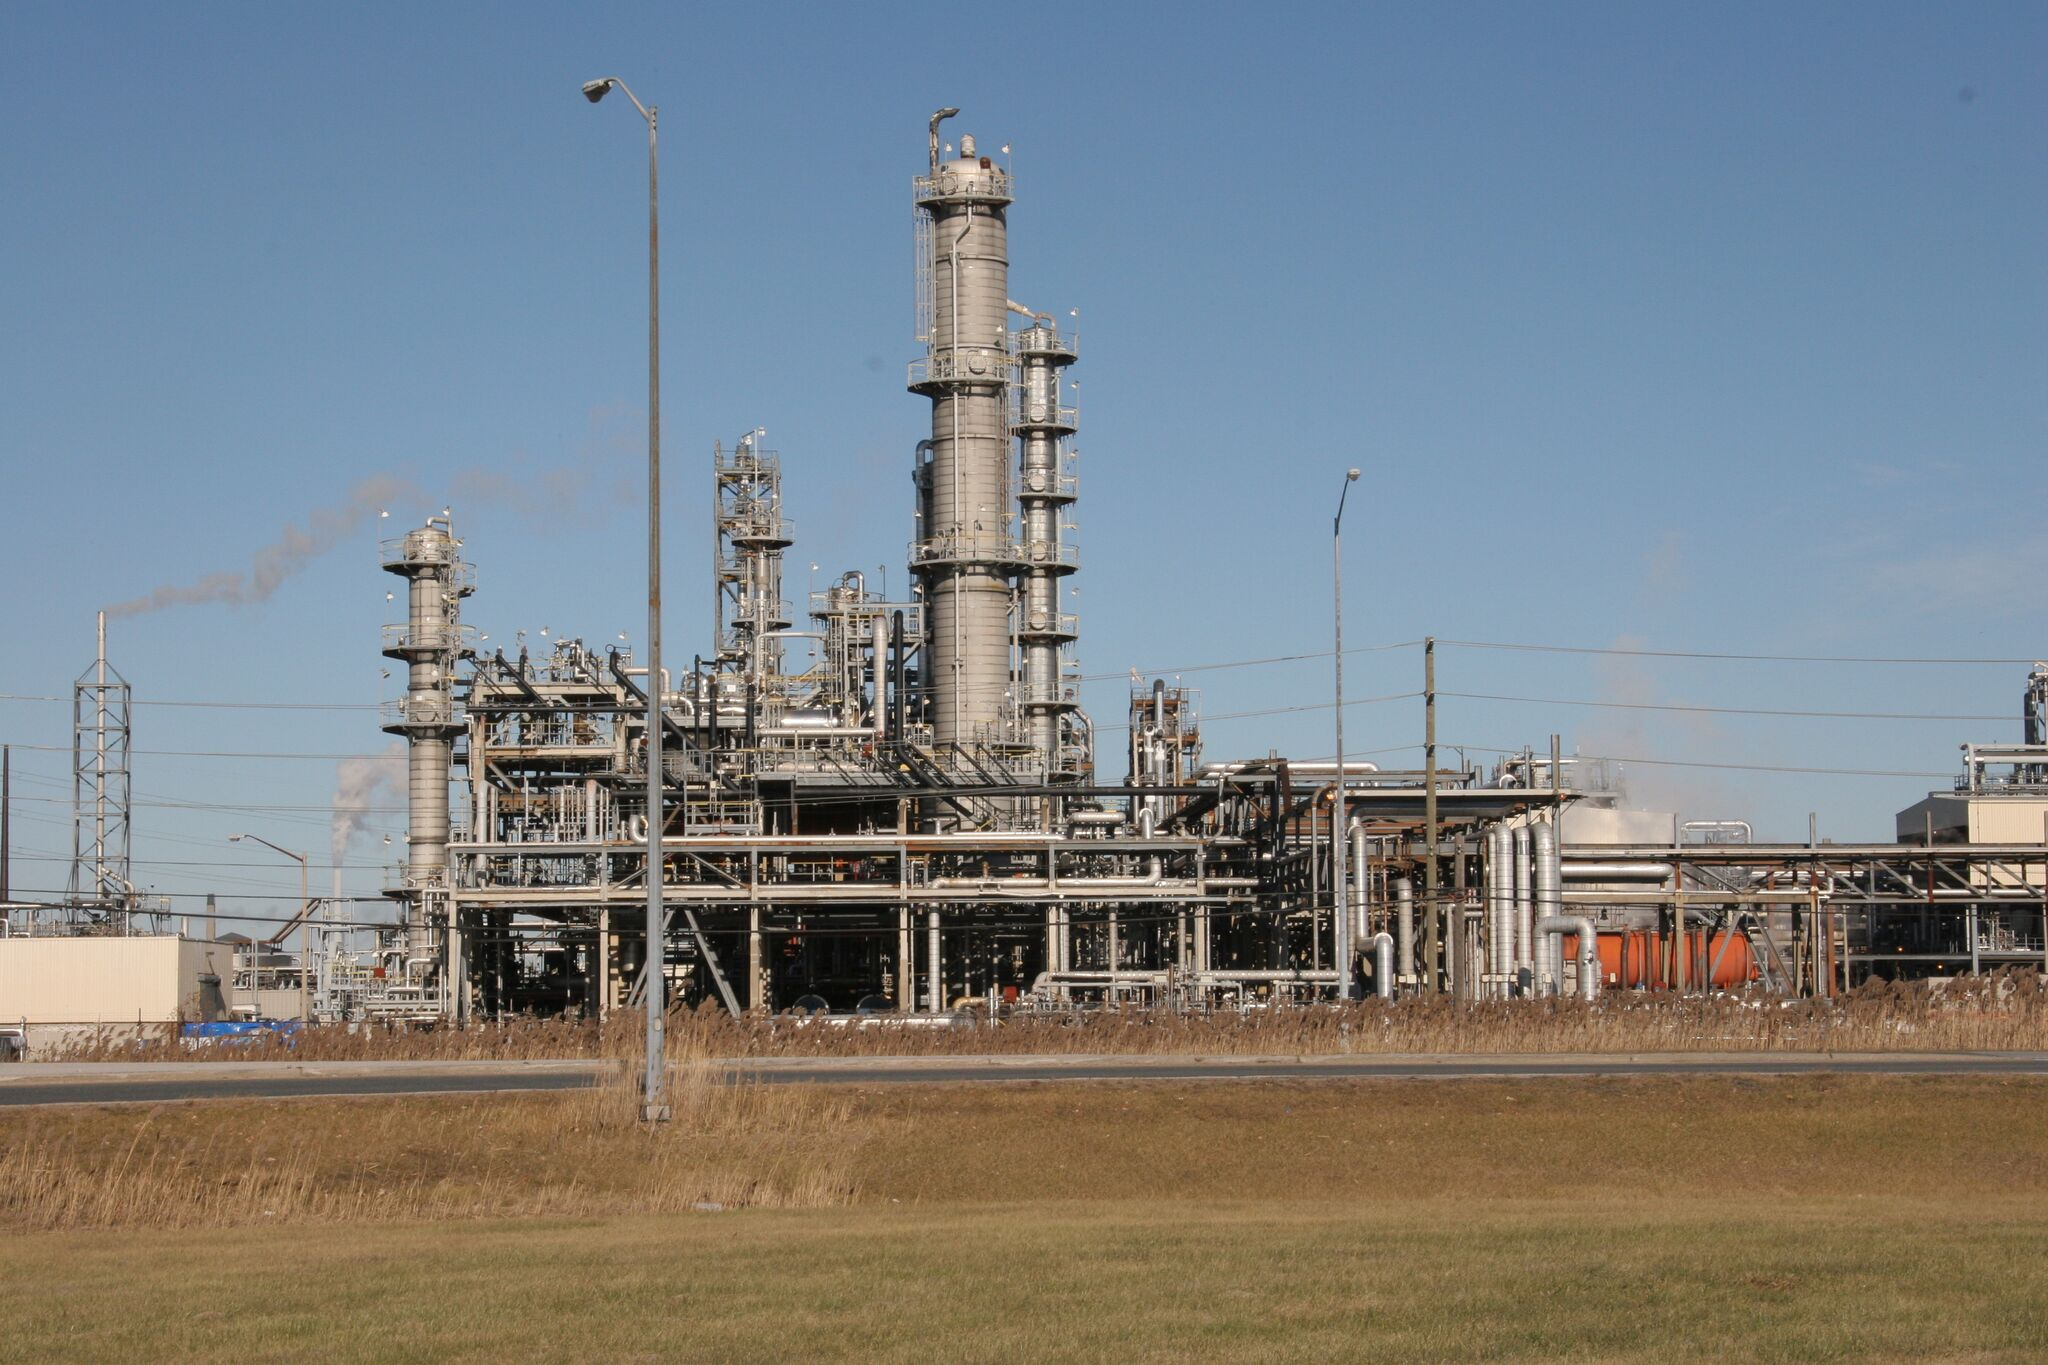 a petrochemical plant in Sarnia, Ontario